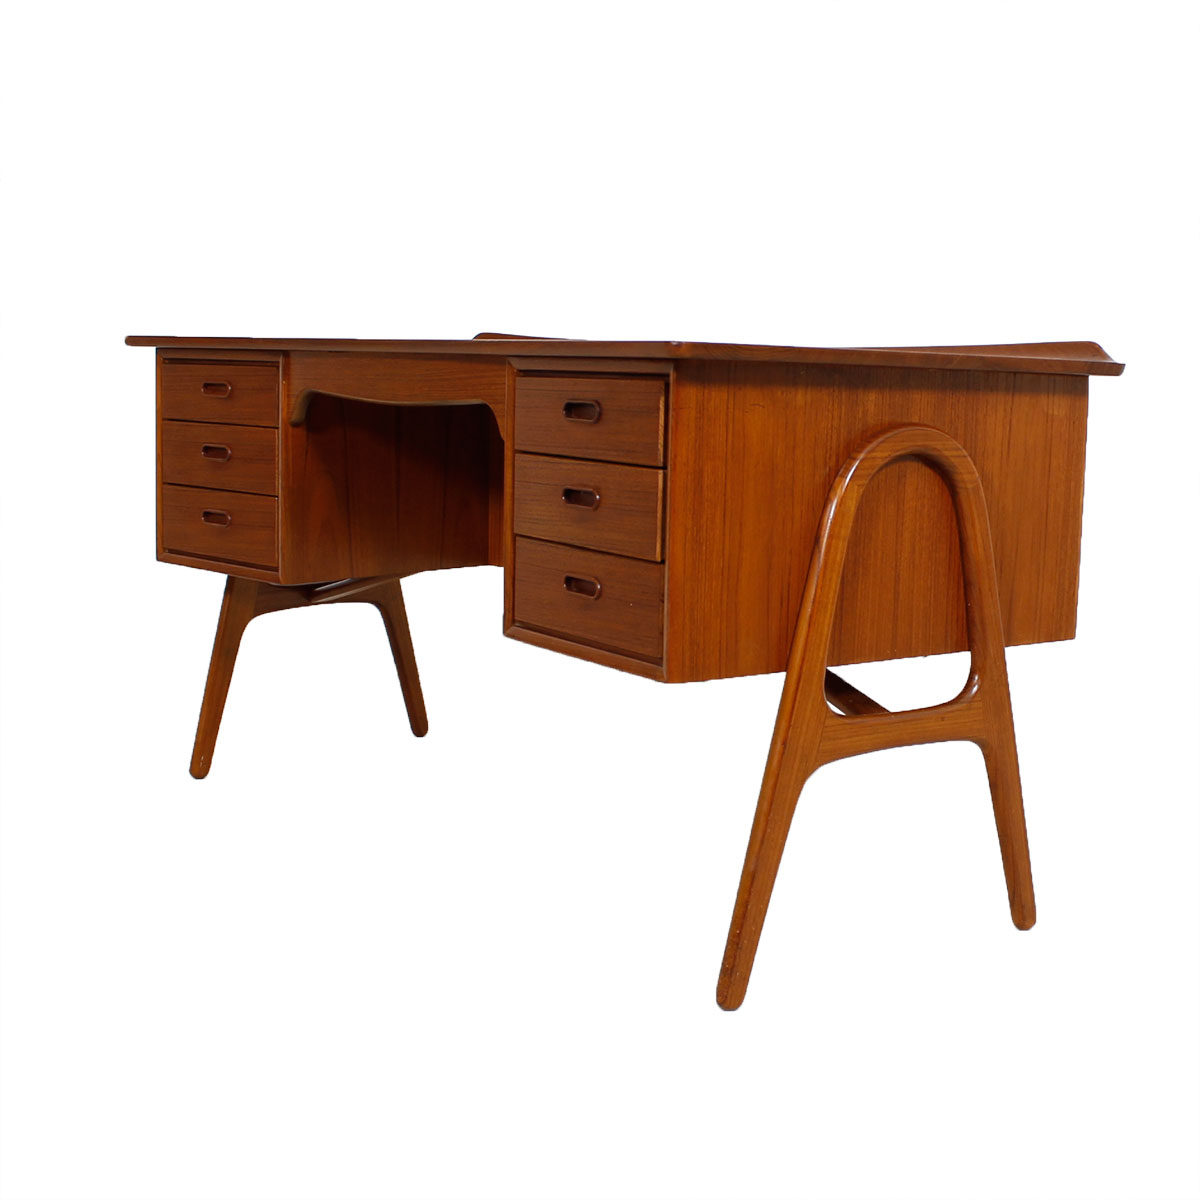 Curved Teak Executive Desk with Hairpin Legs – Compact Size!